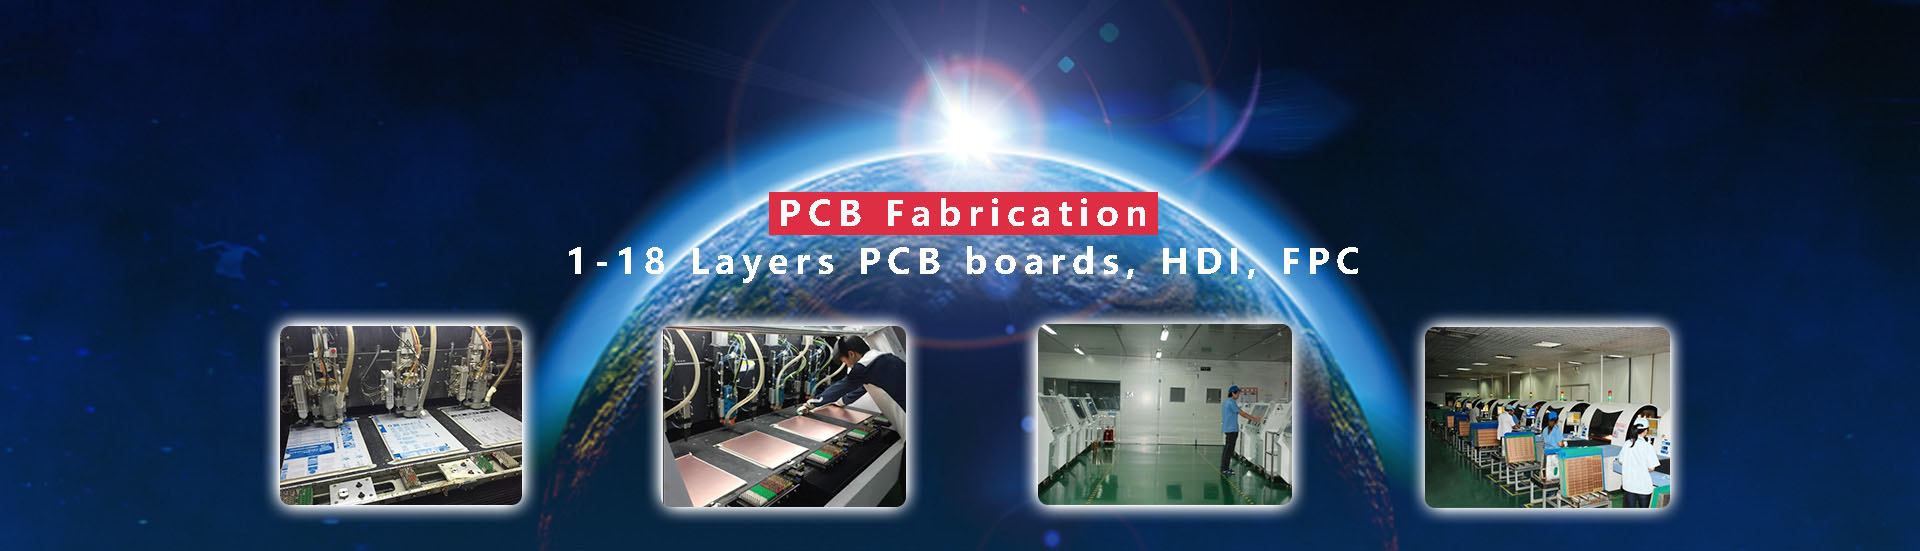 Satech Pcb Pcba China Manufacturer Assembly Shenzhen Oem Electronic Printed Circuit Board Manufacturerpcb With The Advantage Of Material And Component Sourcing Channels We Have Ability Fast Sample 48 Hours After Order Confirmation